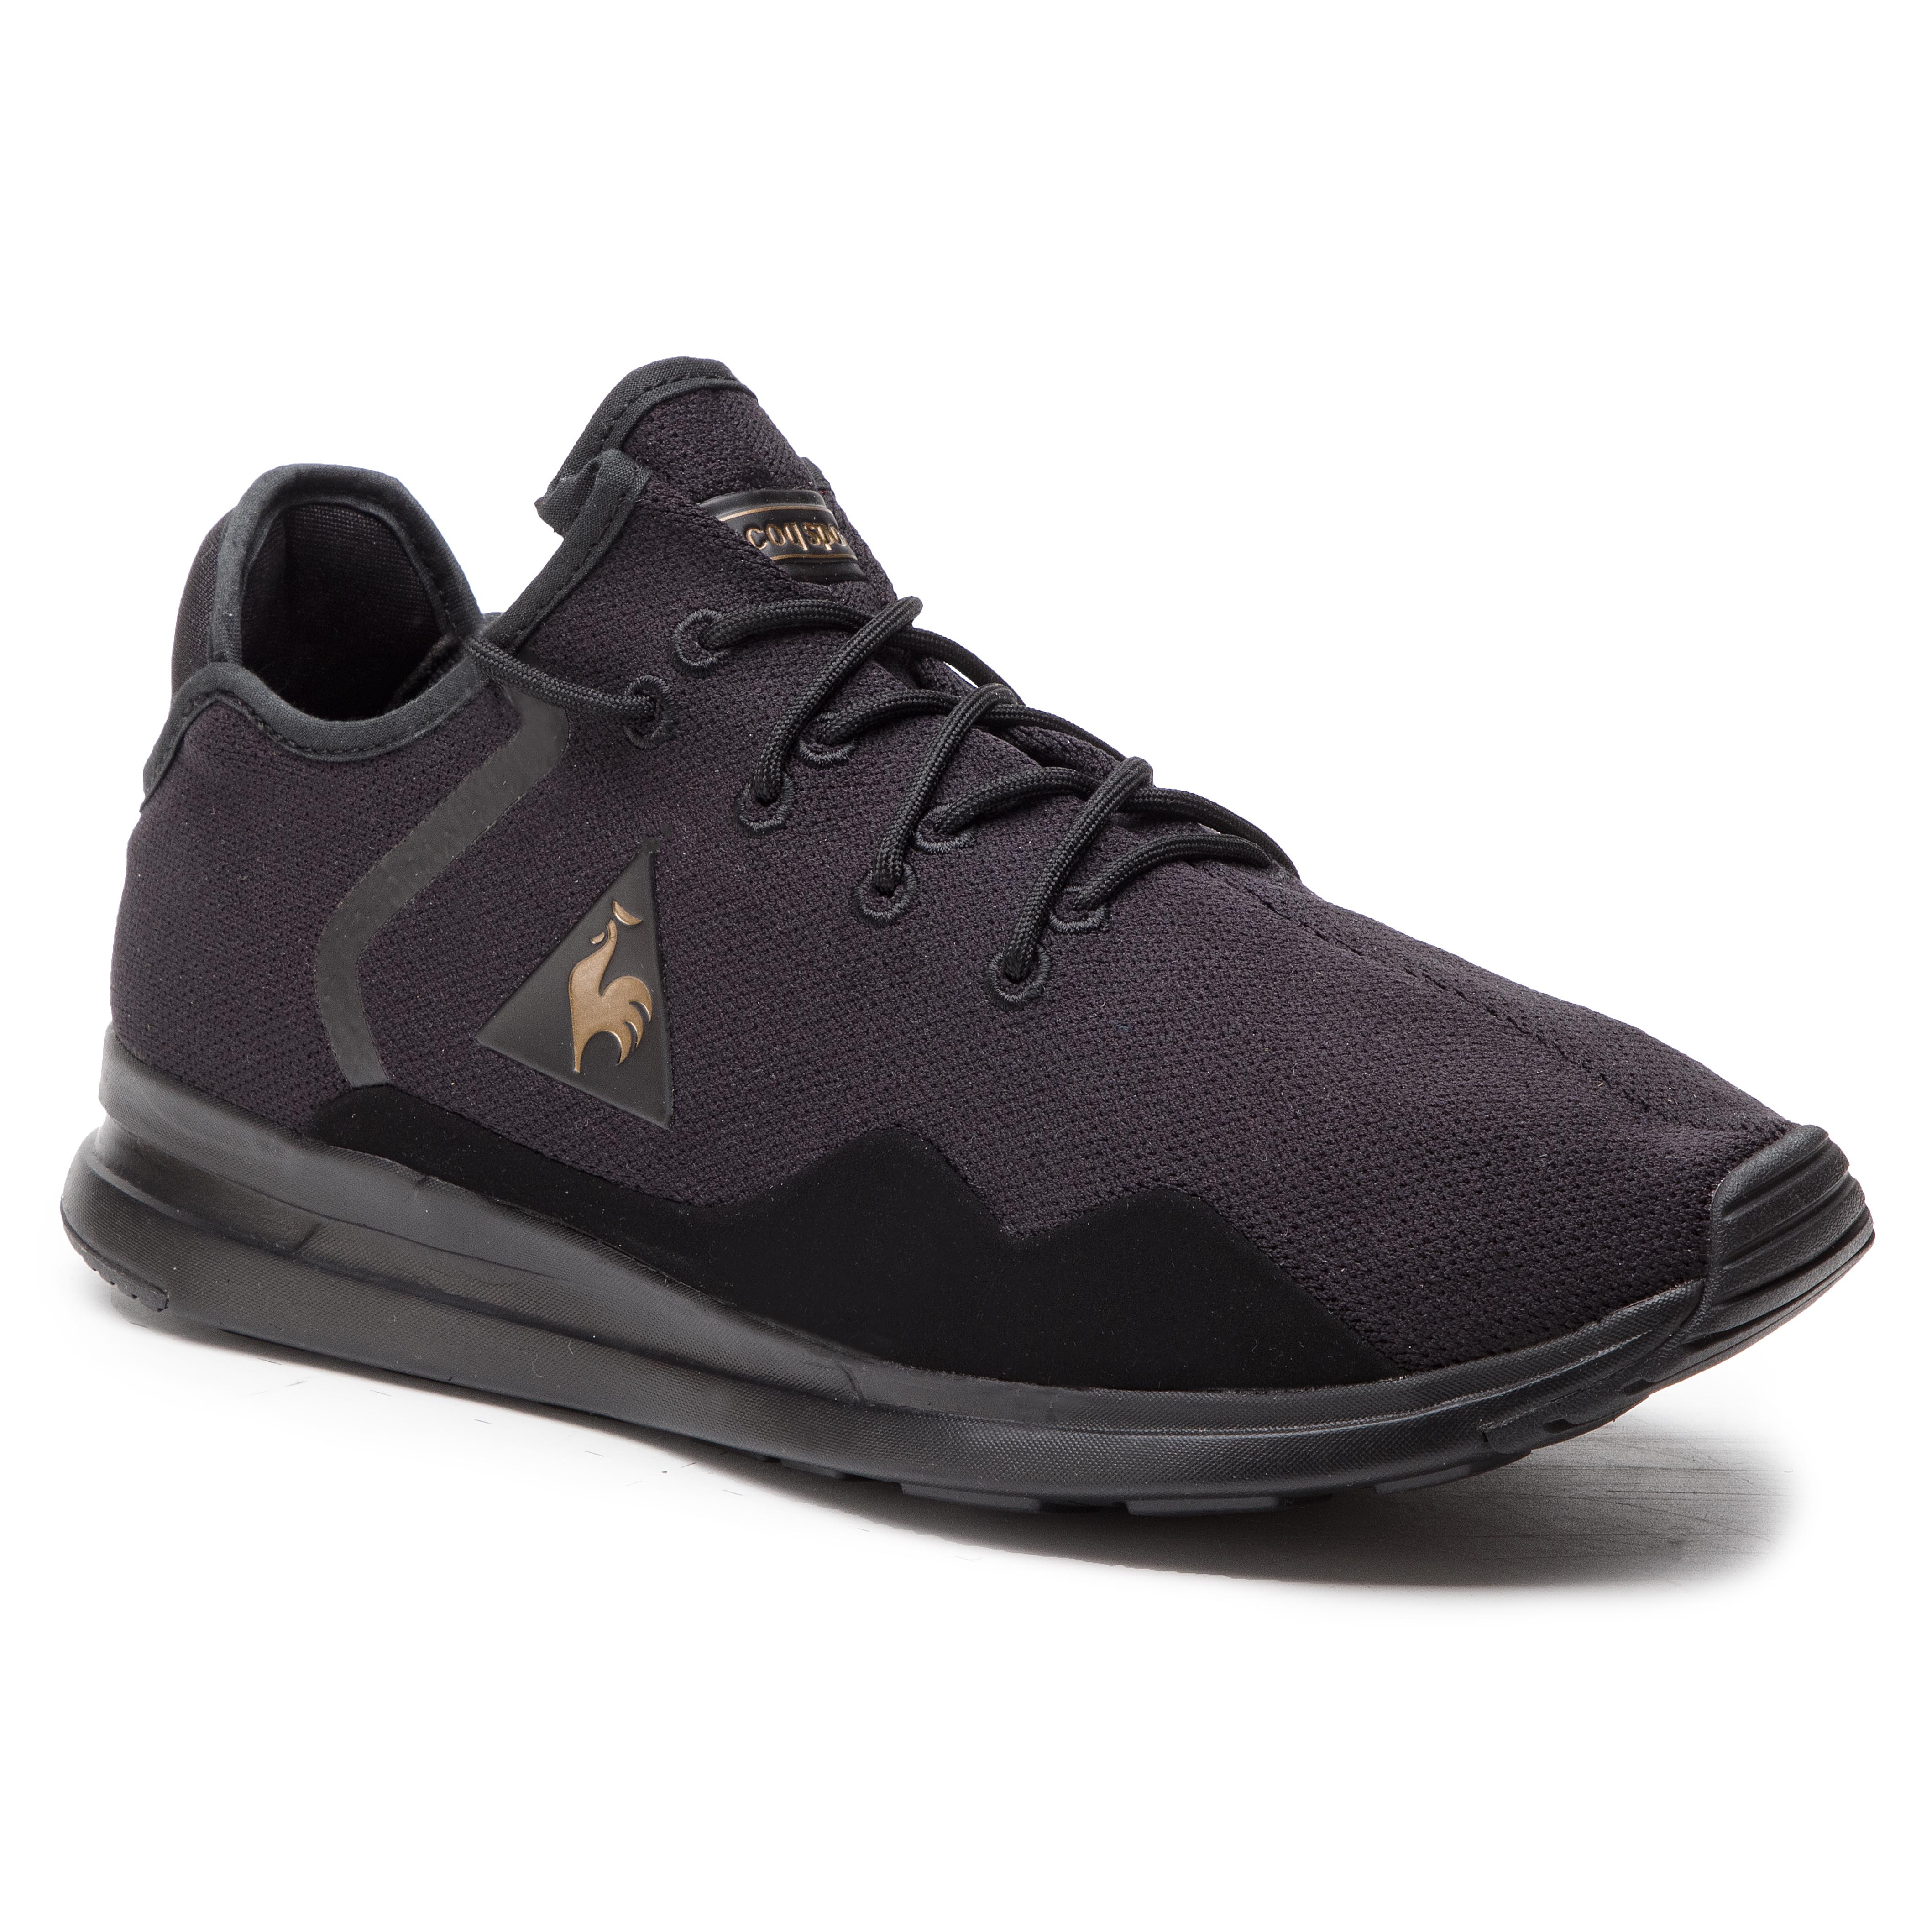 Sneakers LE COQ SPORTIF - Solas 1910481 Black/Old Brass